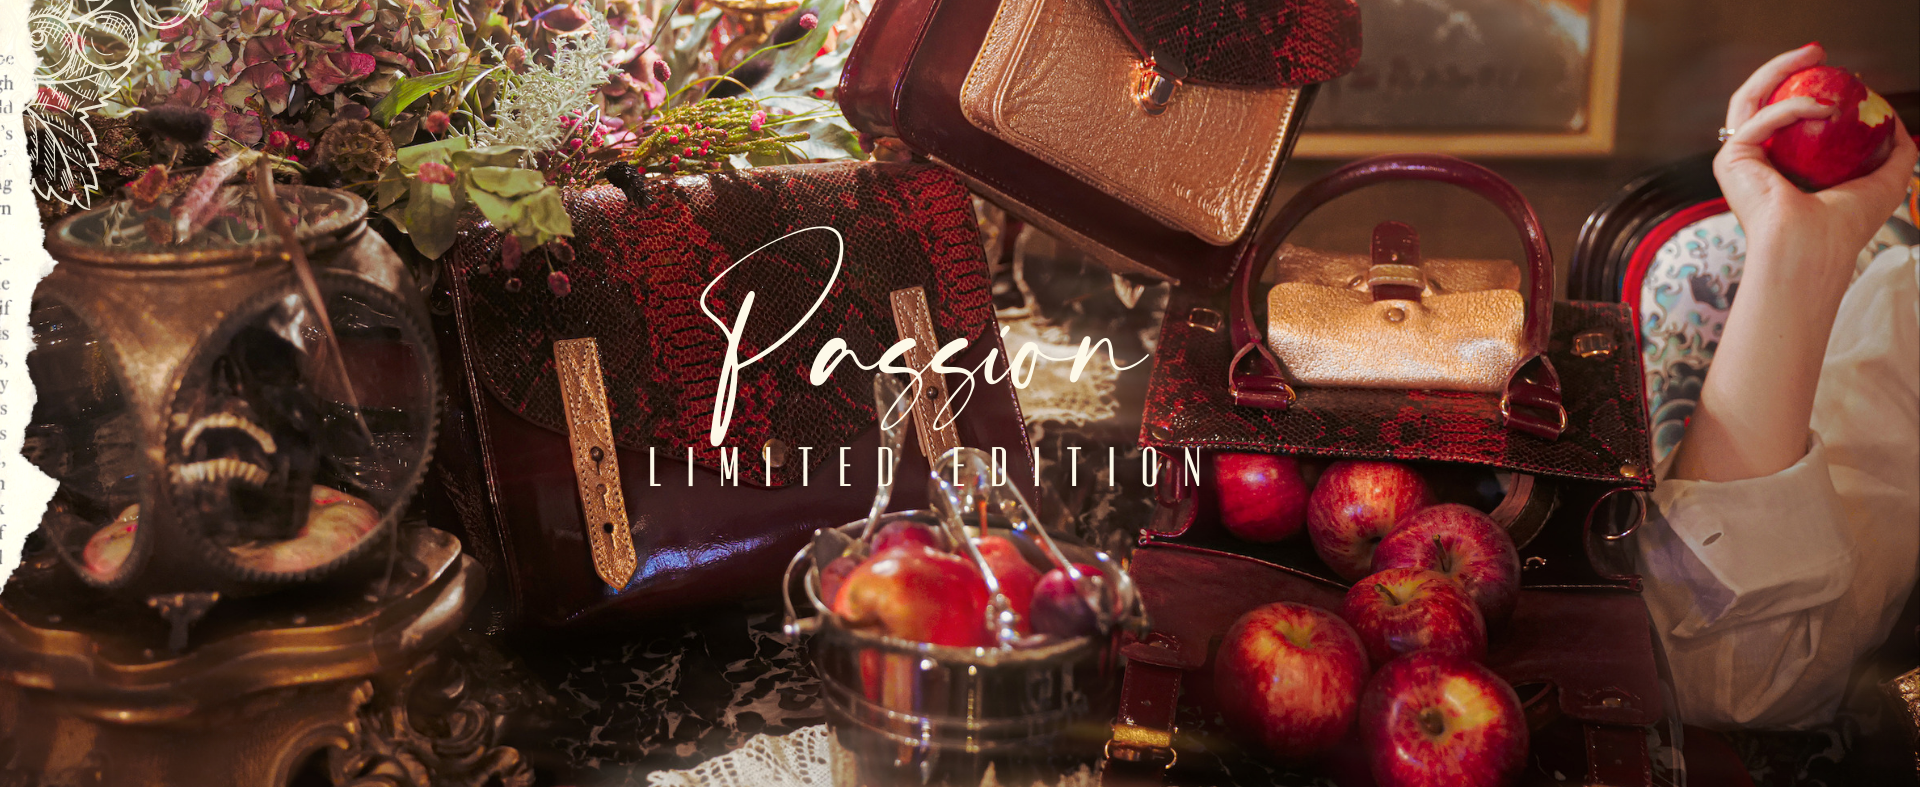 NEW COLLECTION - PASSION